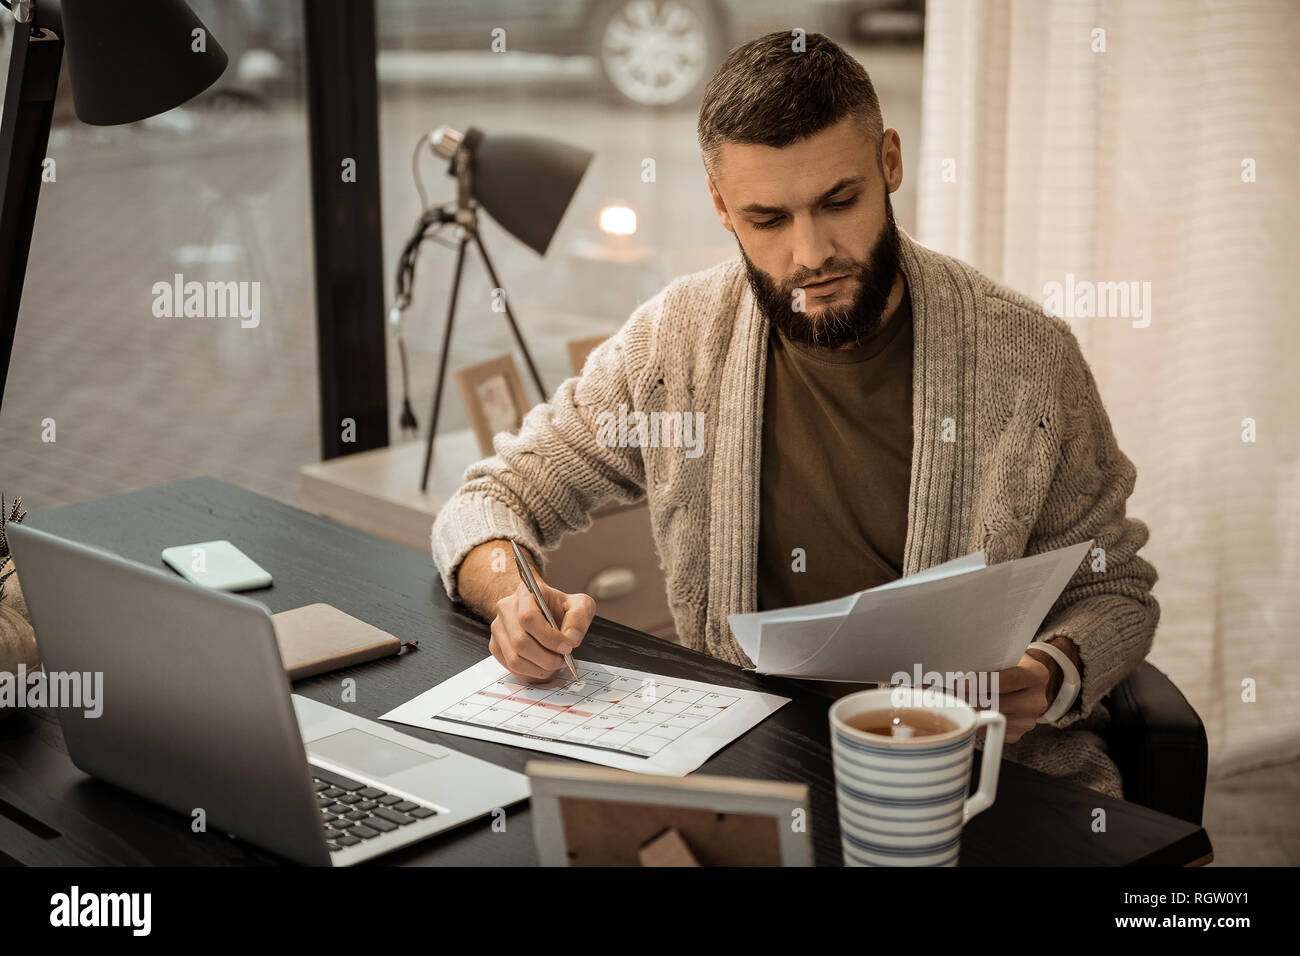 Confused self-employed bearded man flipping through papers - Stock Image